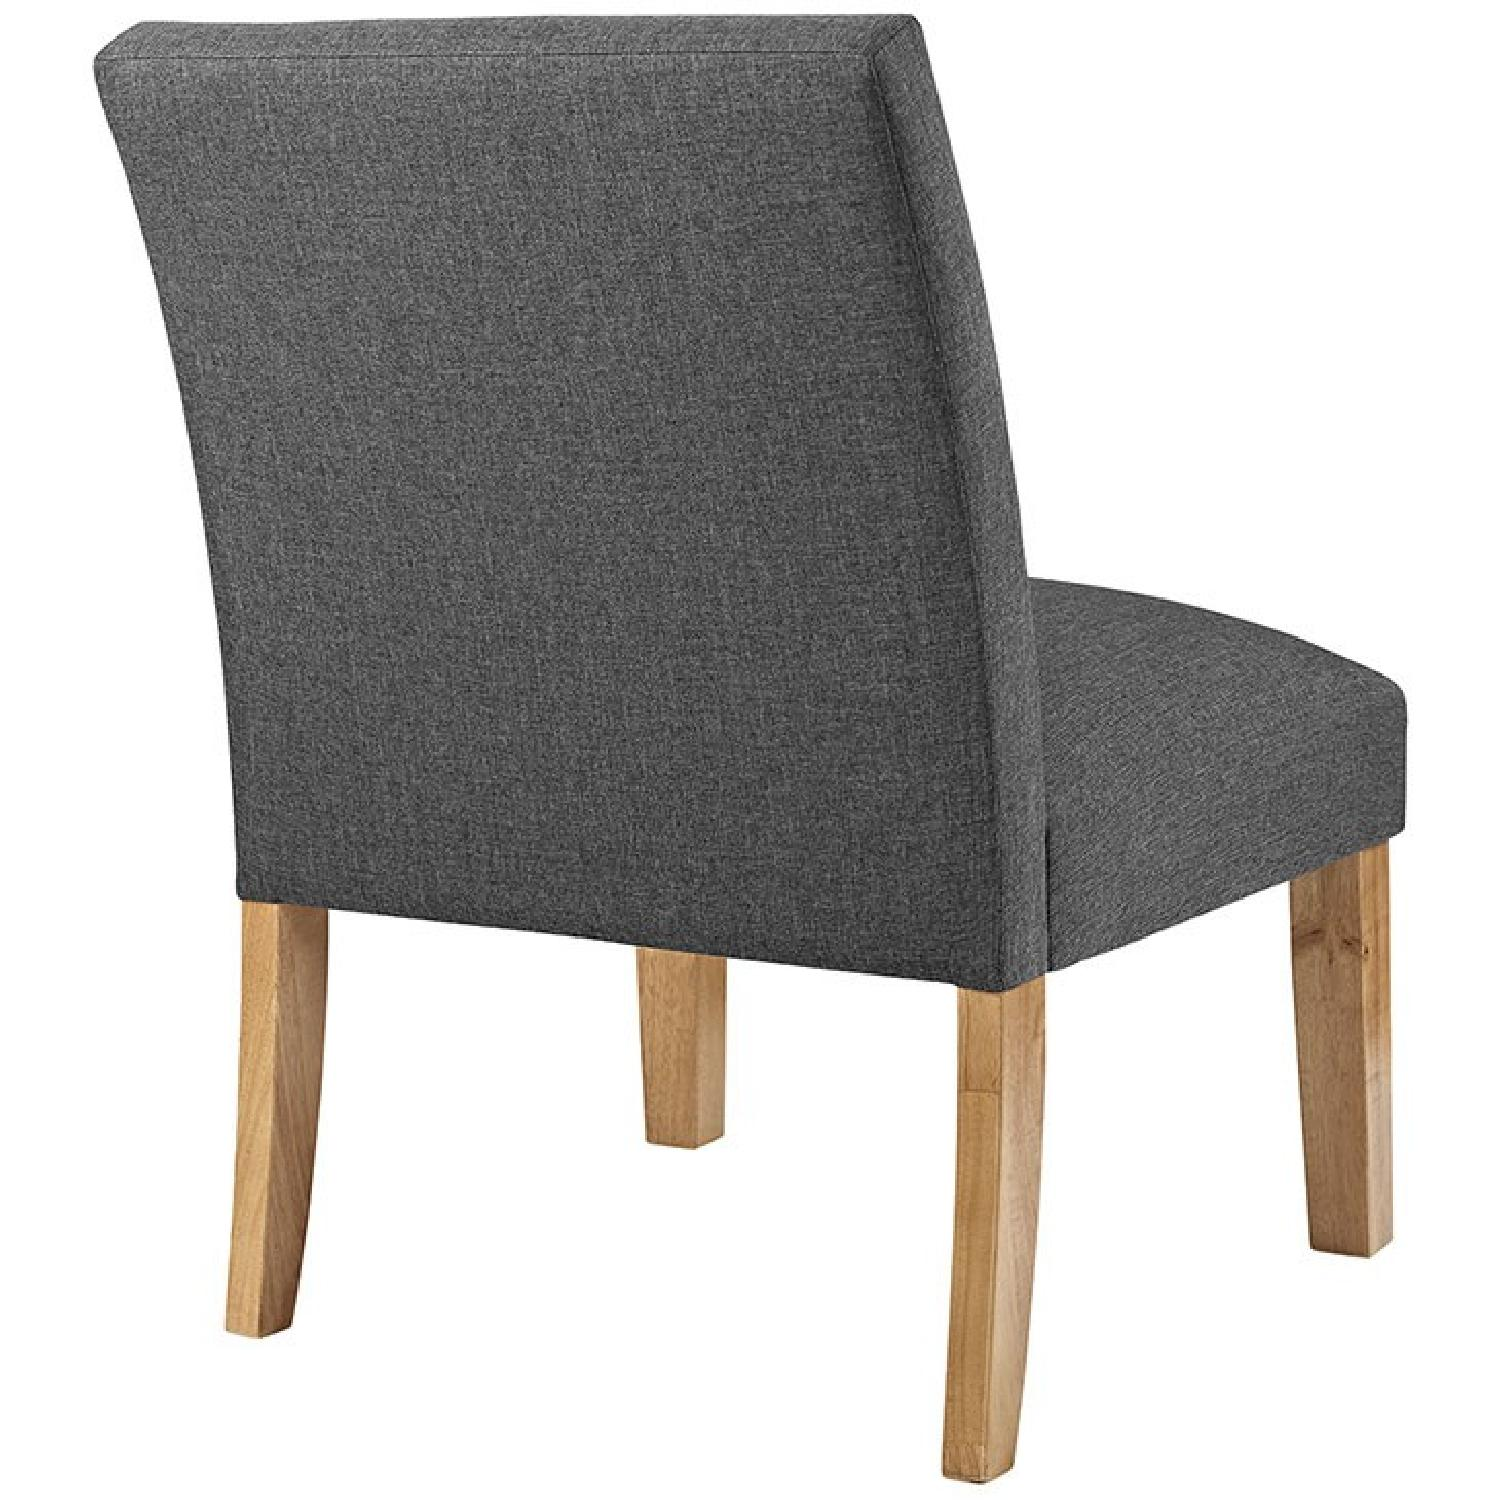 Grey Accent Chair - image-2